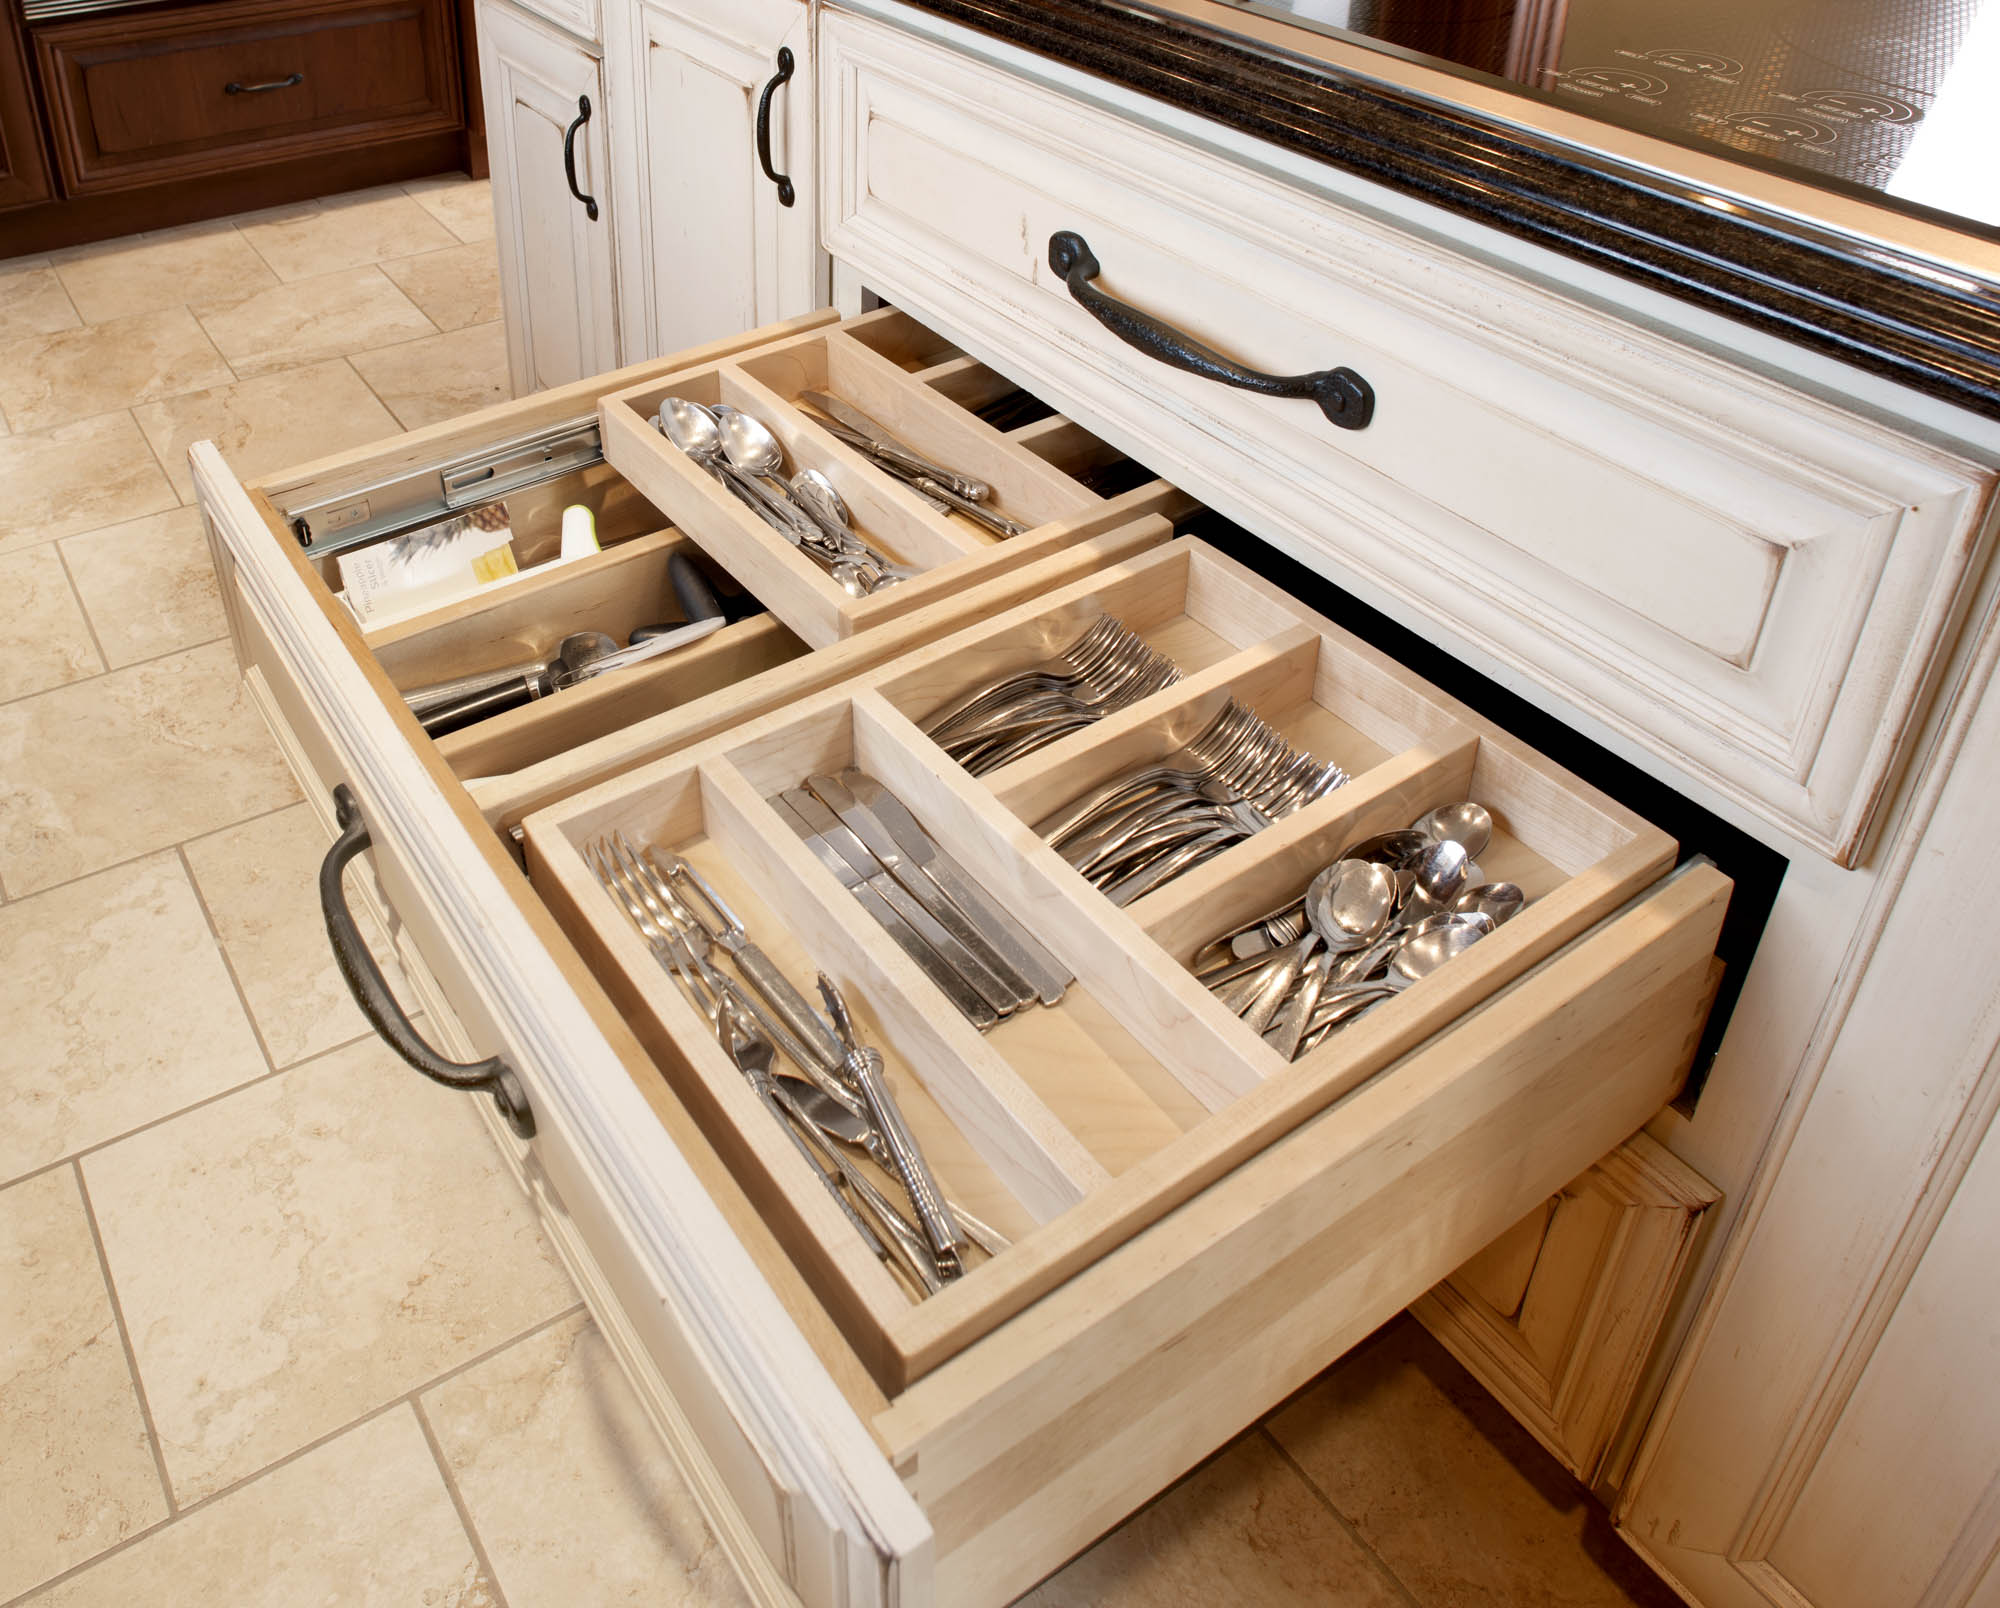 Painted kitchen island with cutlery drawer in Vintage Soft Cream by Showplace Cabinetry